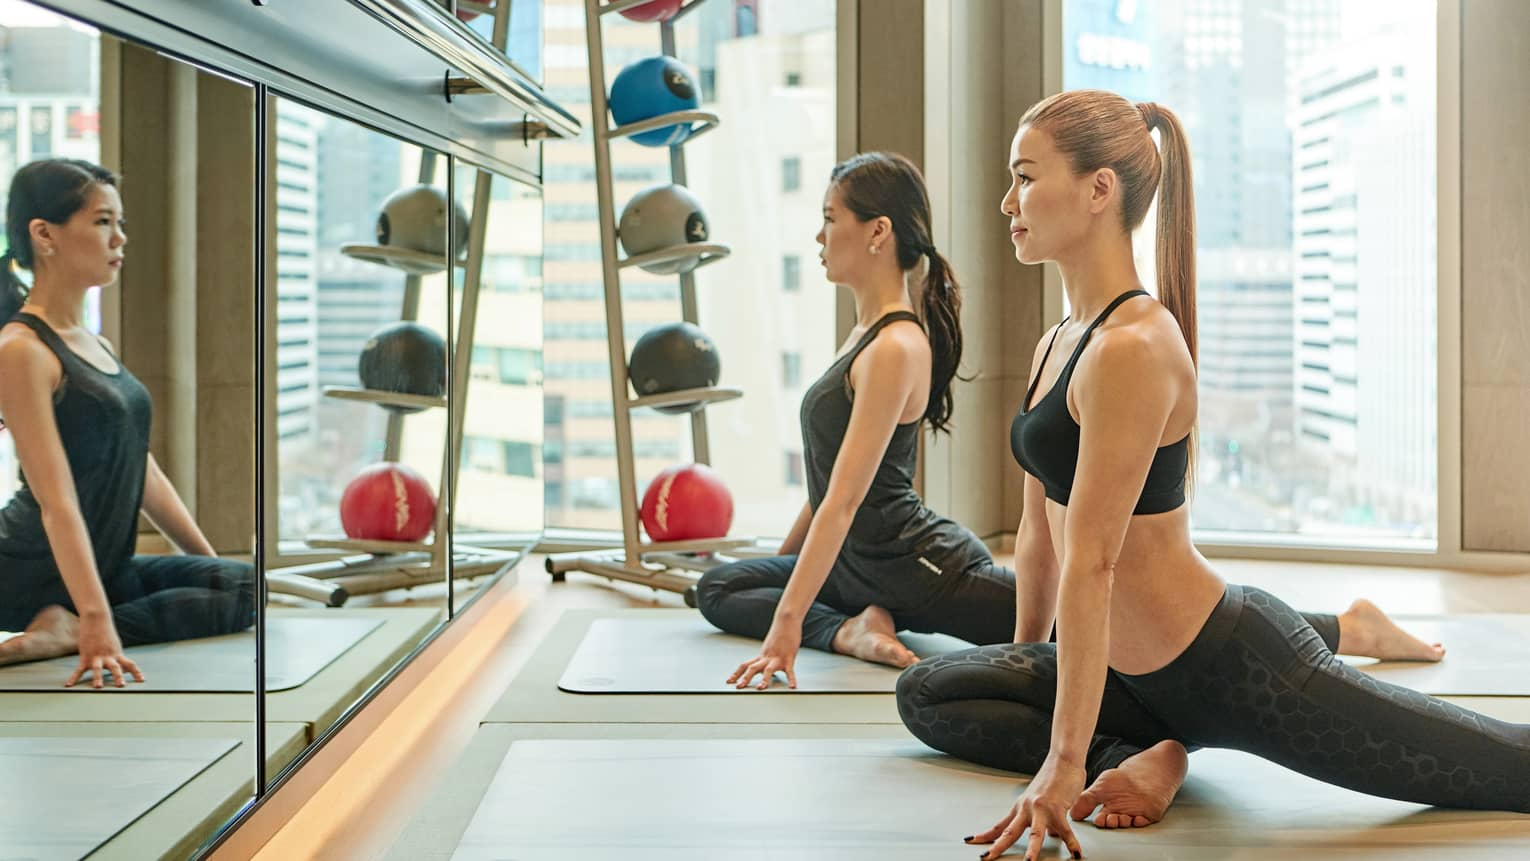 Two women sit on mats, stretch in yoga poses in front of wall mirror in Fitness Centre